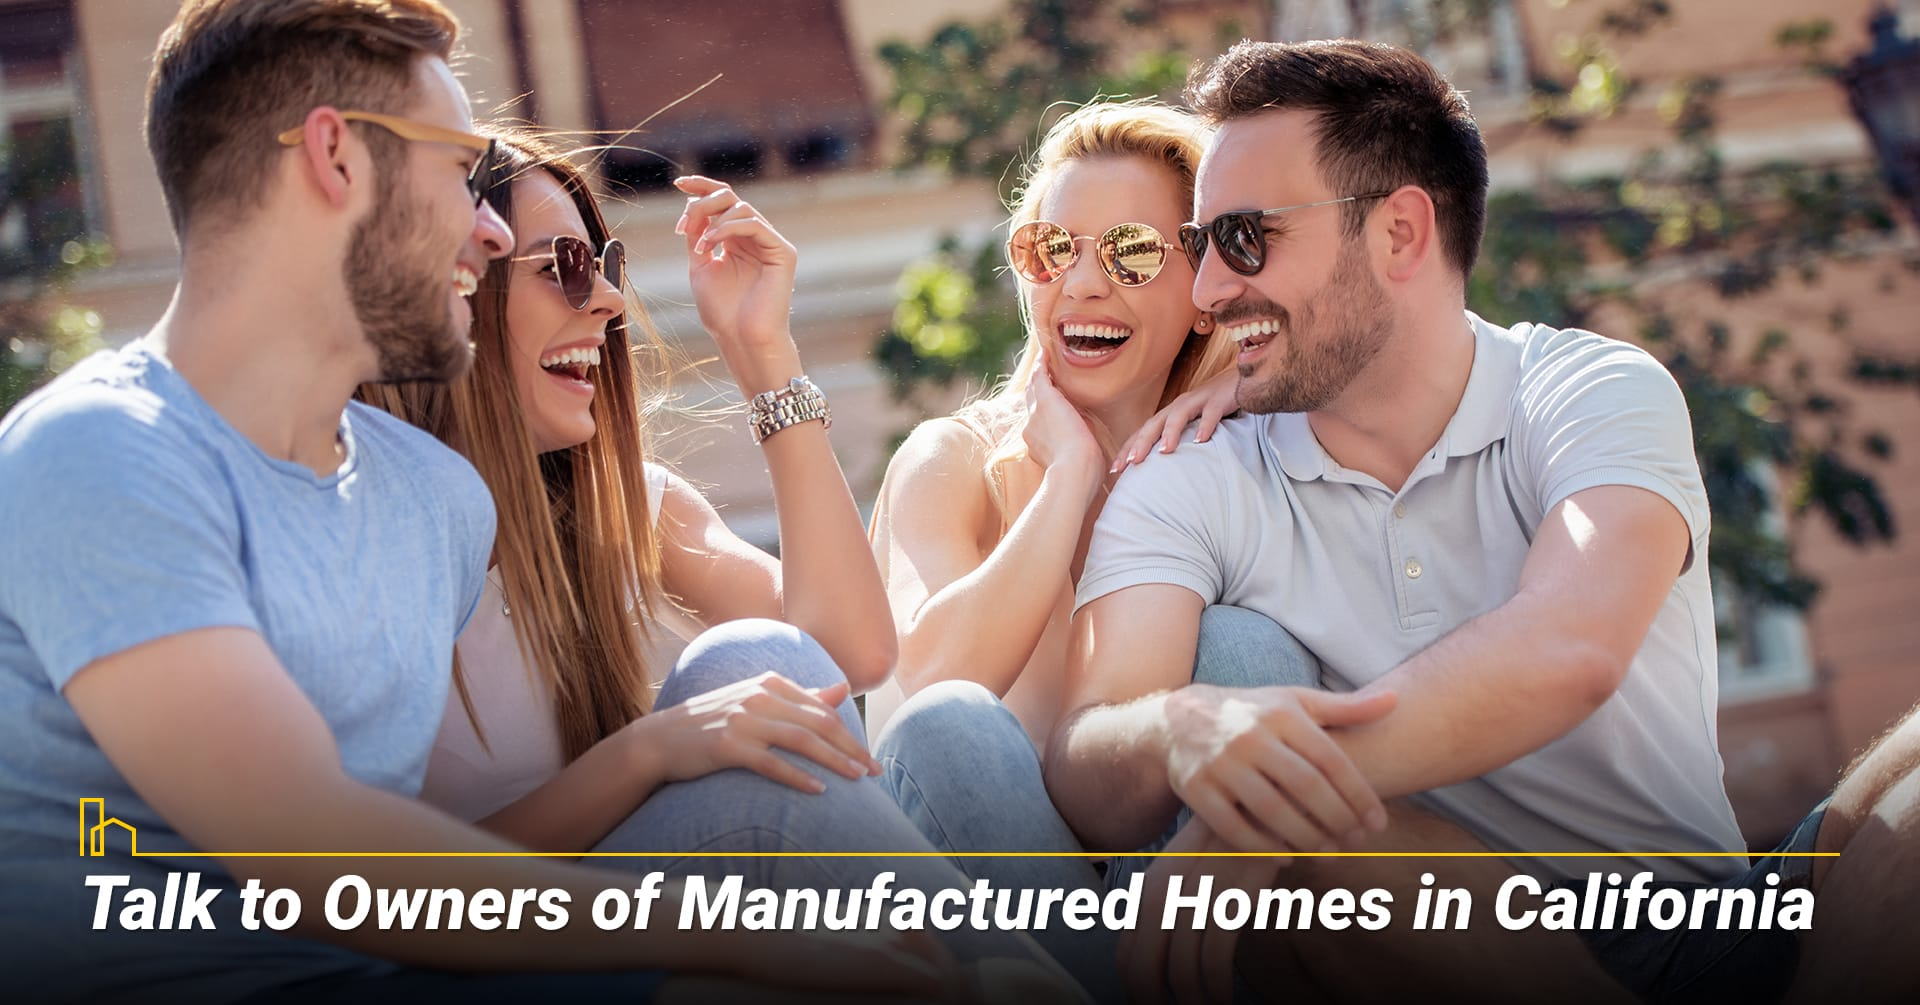 Talk to Owners of Manufactured Homes in California, gather information from current owners